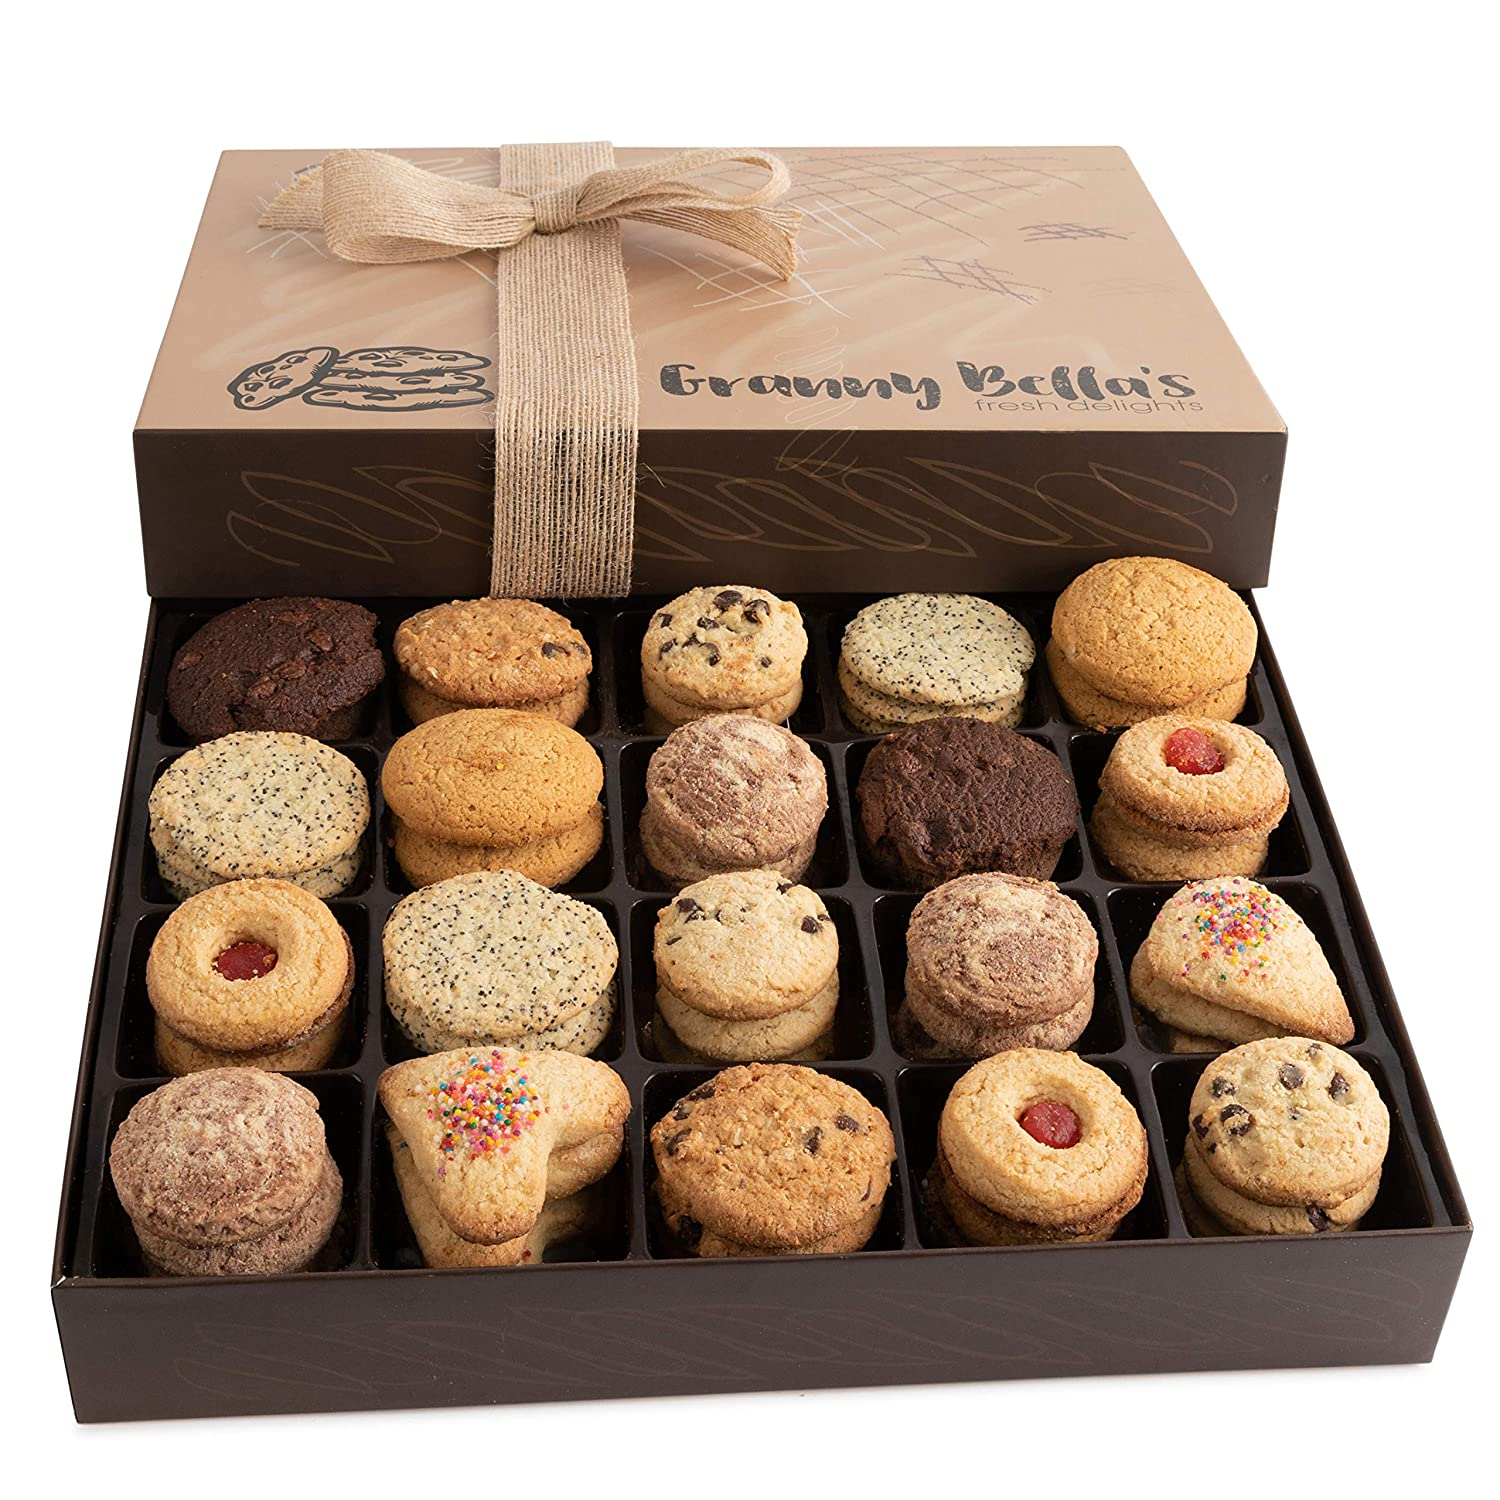 Granny Bella's Christmas Cookie Gift Baskets, 52 Gourmet Cookies, Family Holiday Assortment Food Birthday Gifts, Prime Unique Box Delivery for Men and Women Mother Father Thanksgiving & Valentines Day